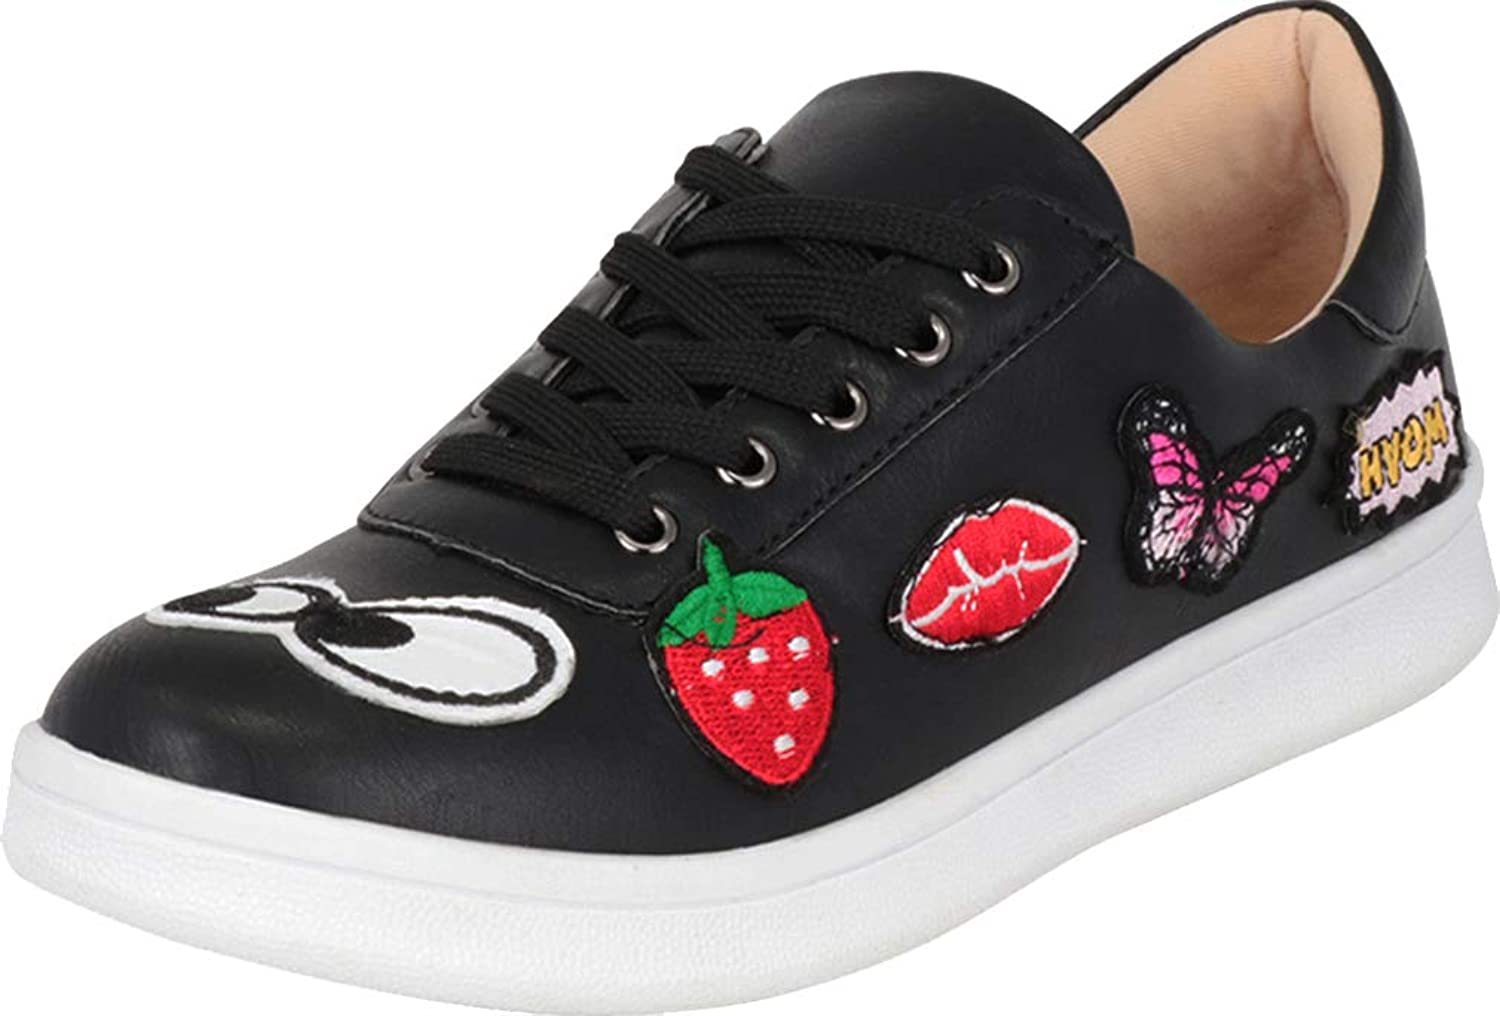 Cambridge Select Women's Low Top Embroidered Patch Lace-Up Flatform Fashion Sneaker